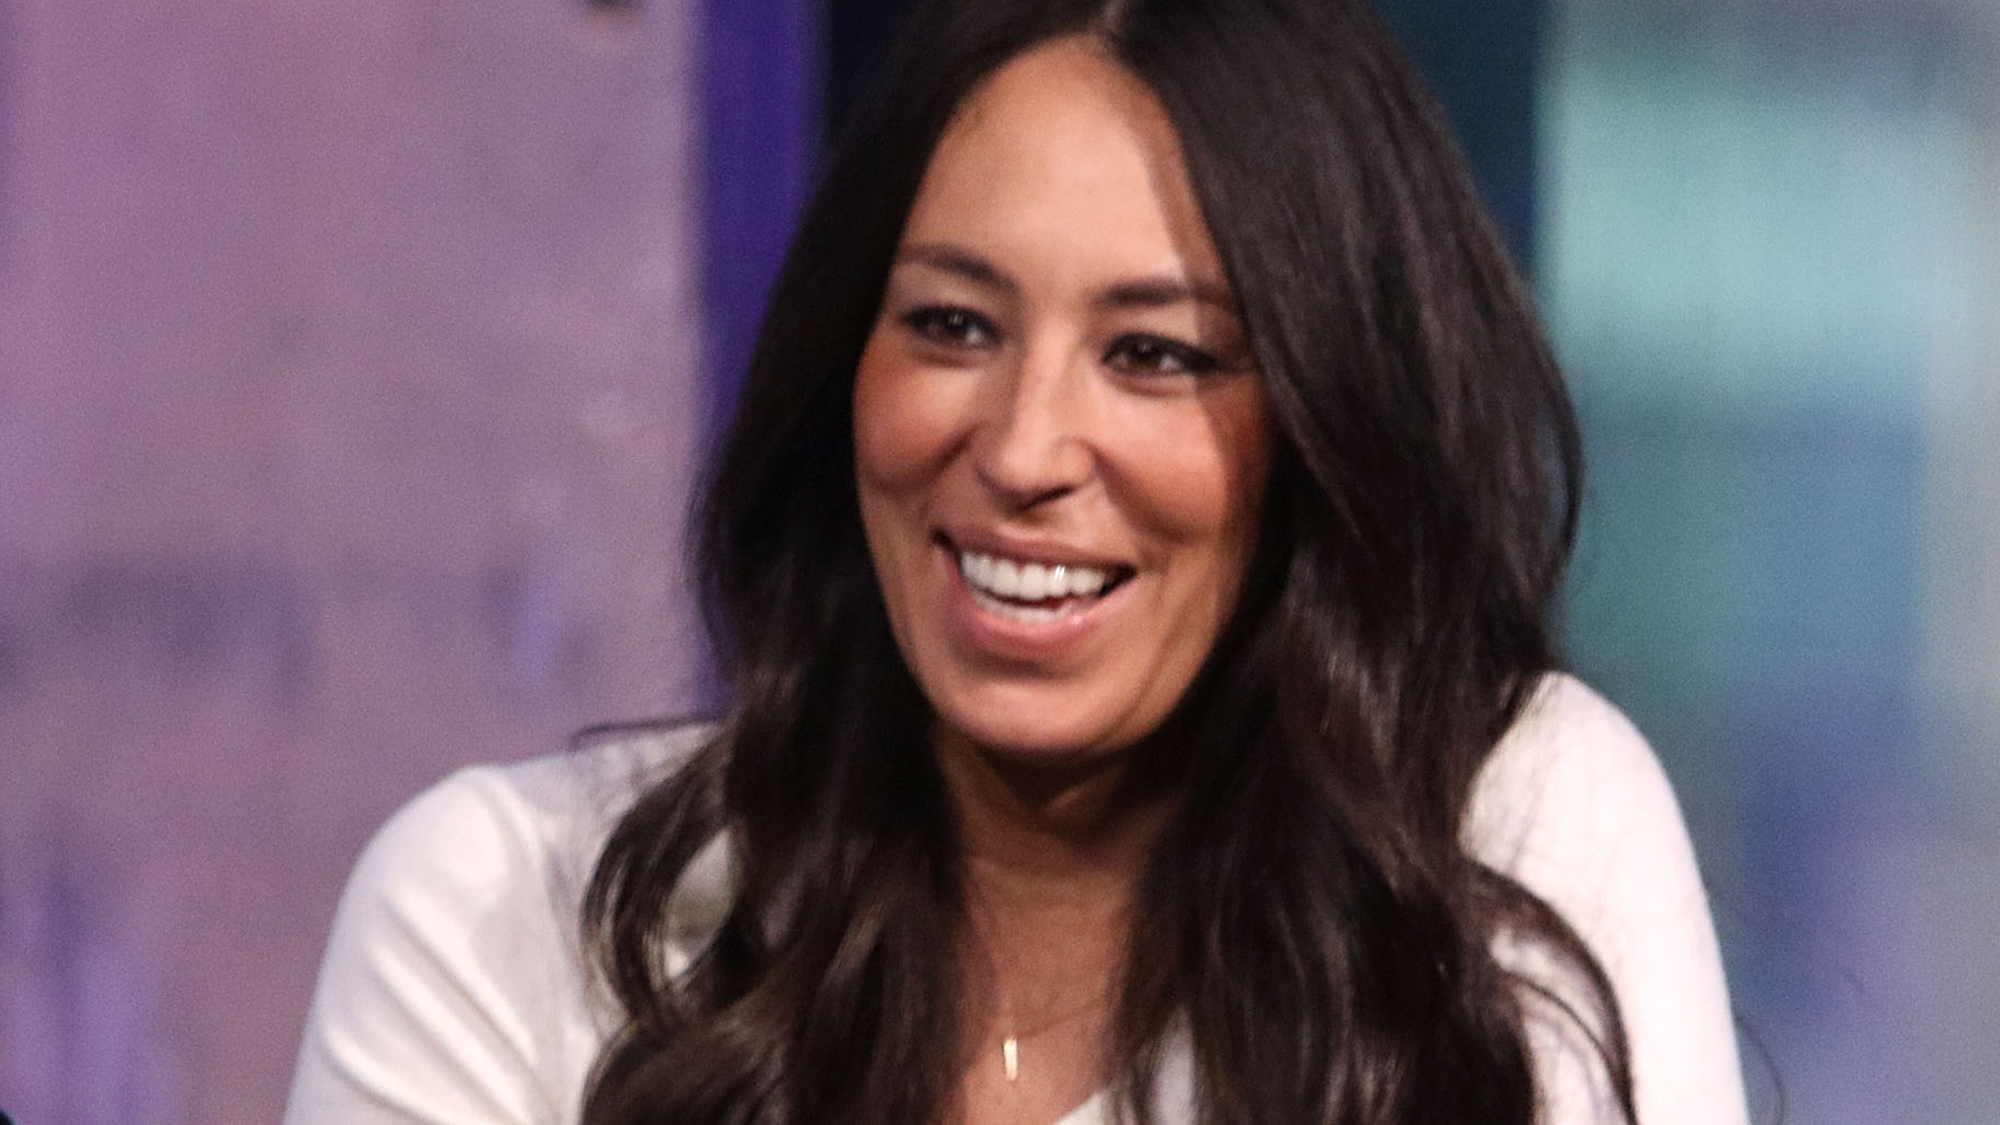 100 Joanna Gaines No Makeup Kardashian Archives